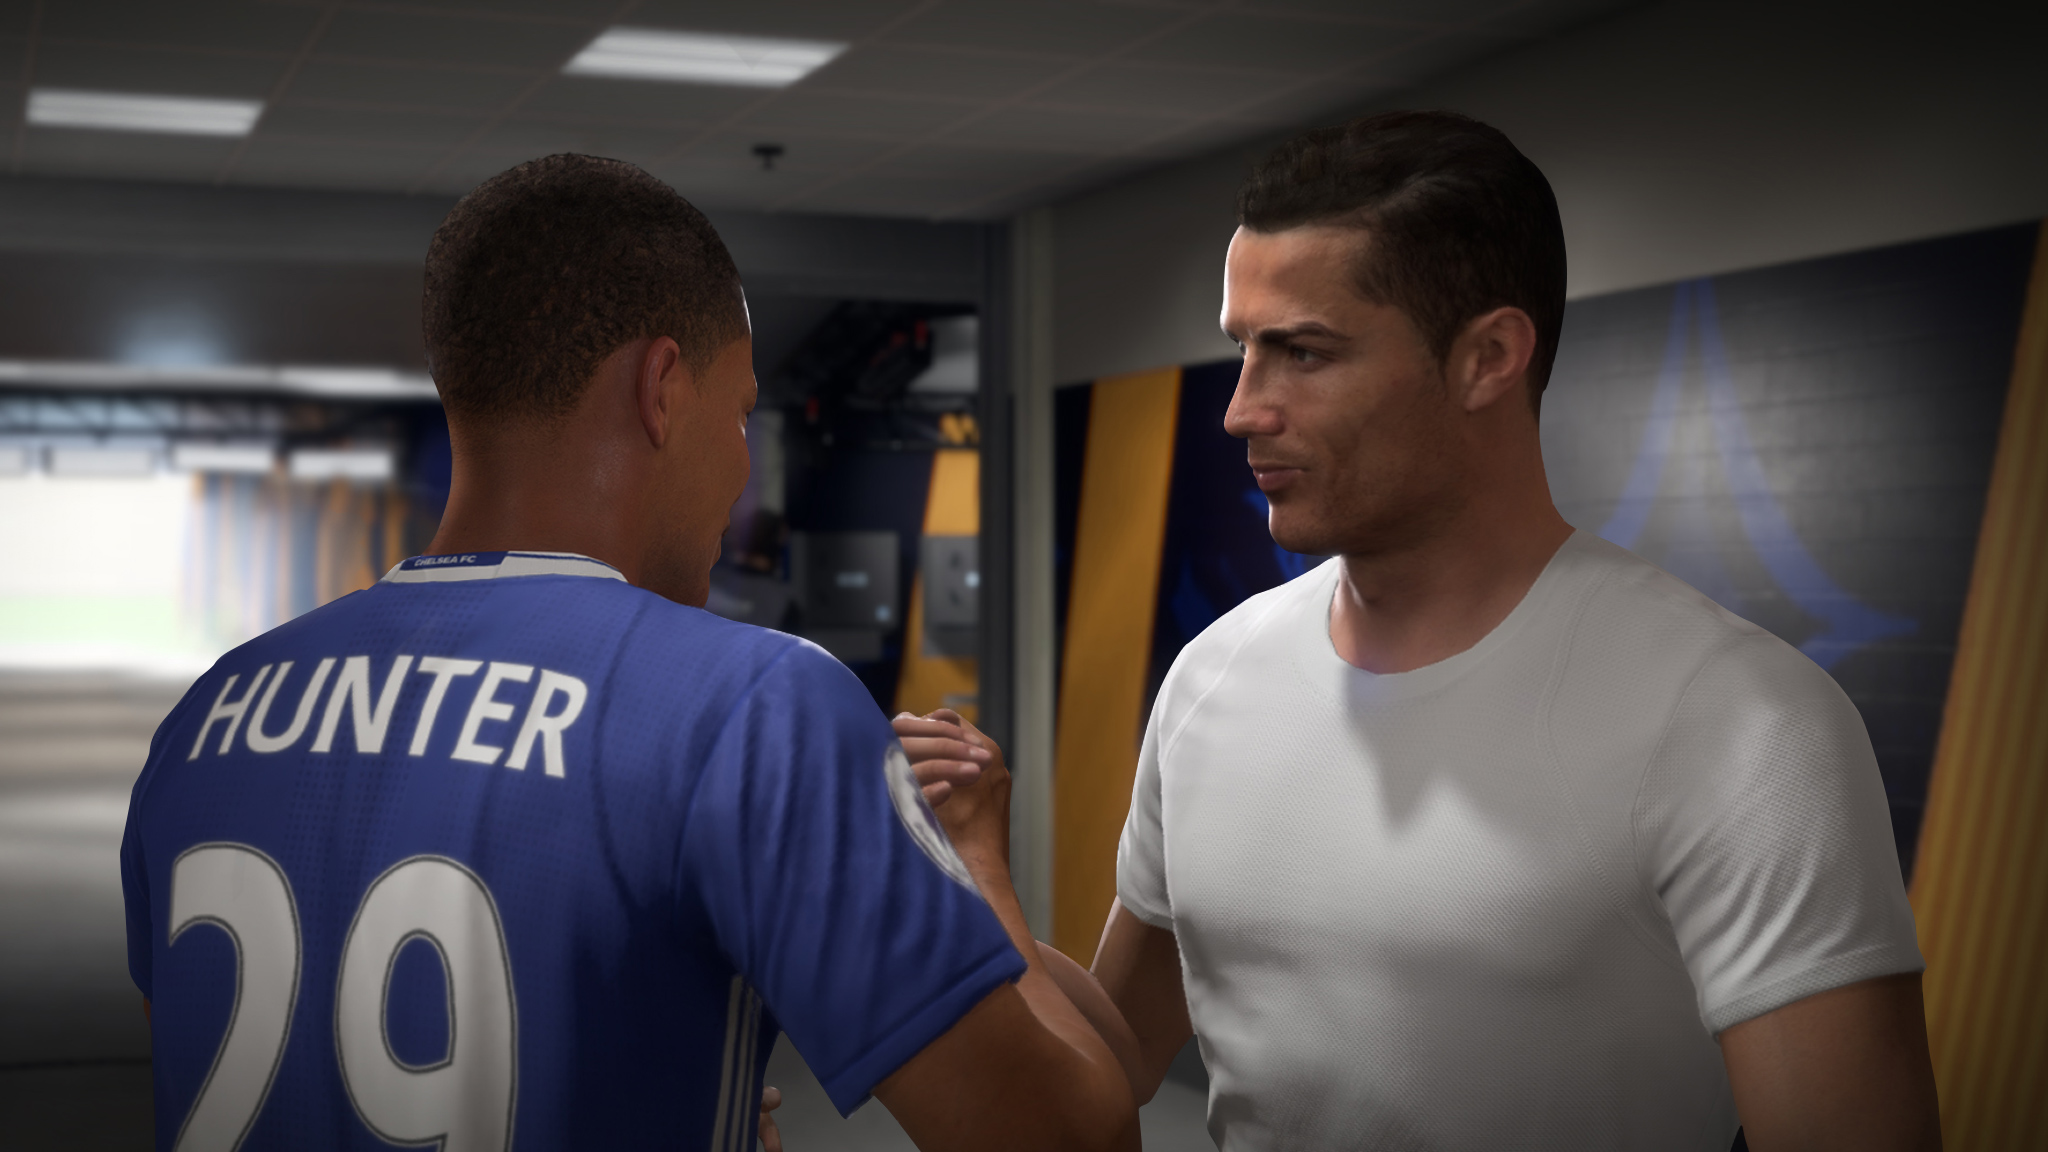 10 hour trial for FIFA 18 now available through EA Access and Origin